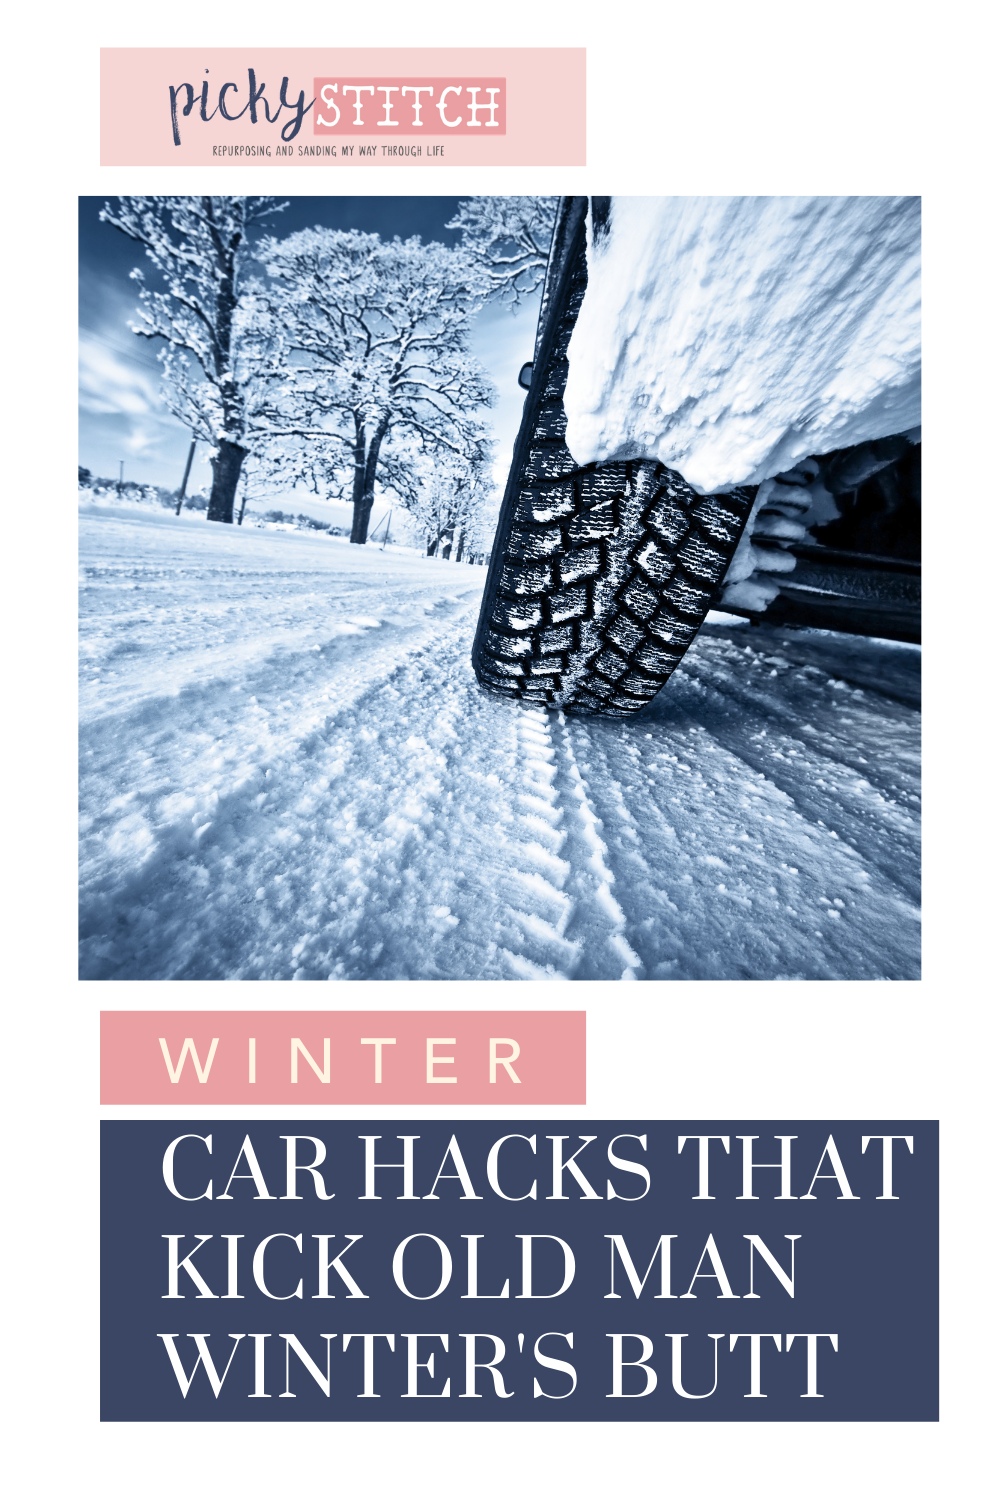 Winter can be a challenge, but these winter car hacks from Pickystitch.com make taking on winter a lot easier.